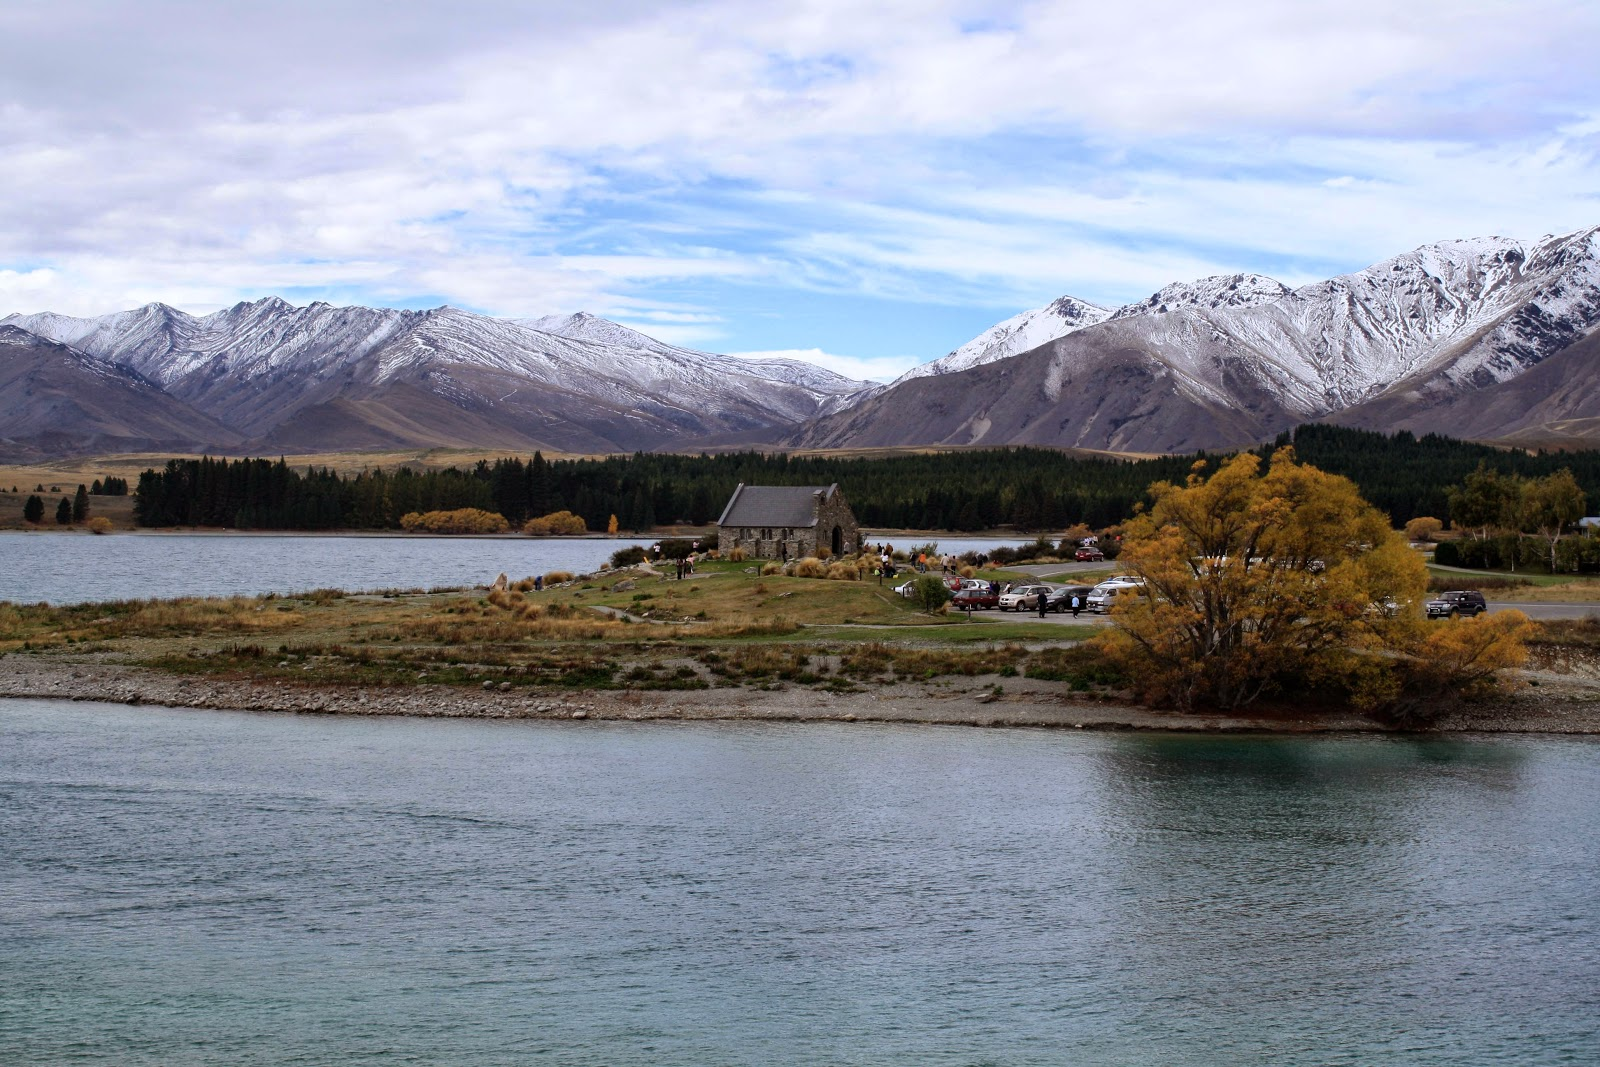 The Church of the Good Shepard at Lake Tekapo.